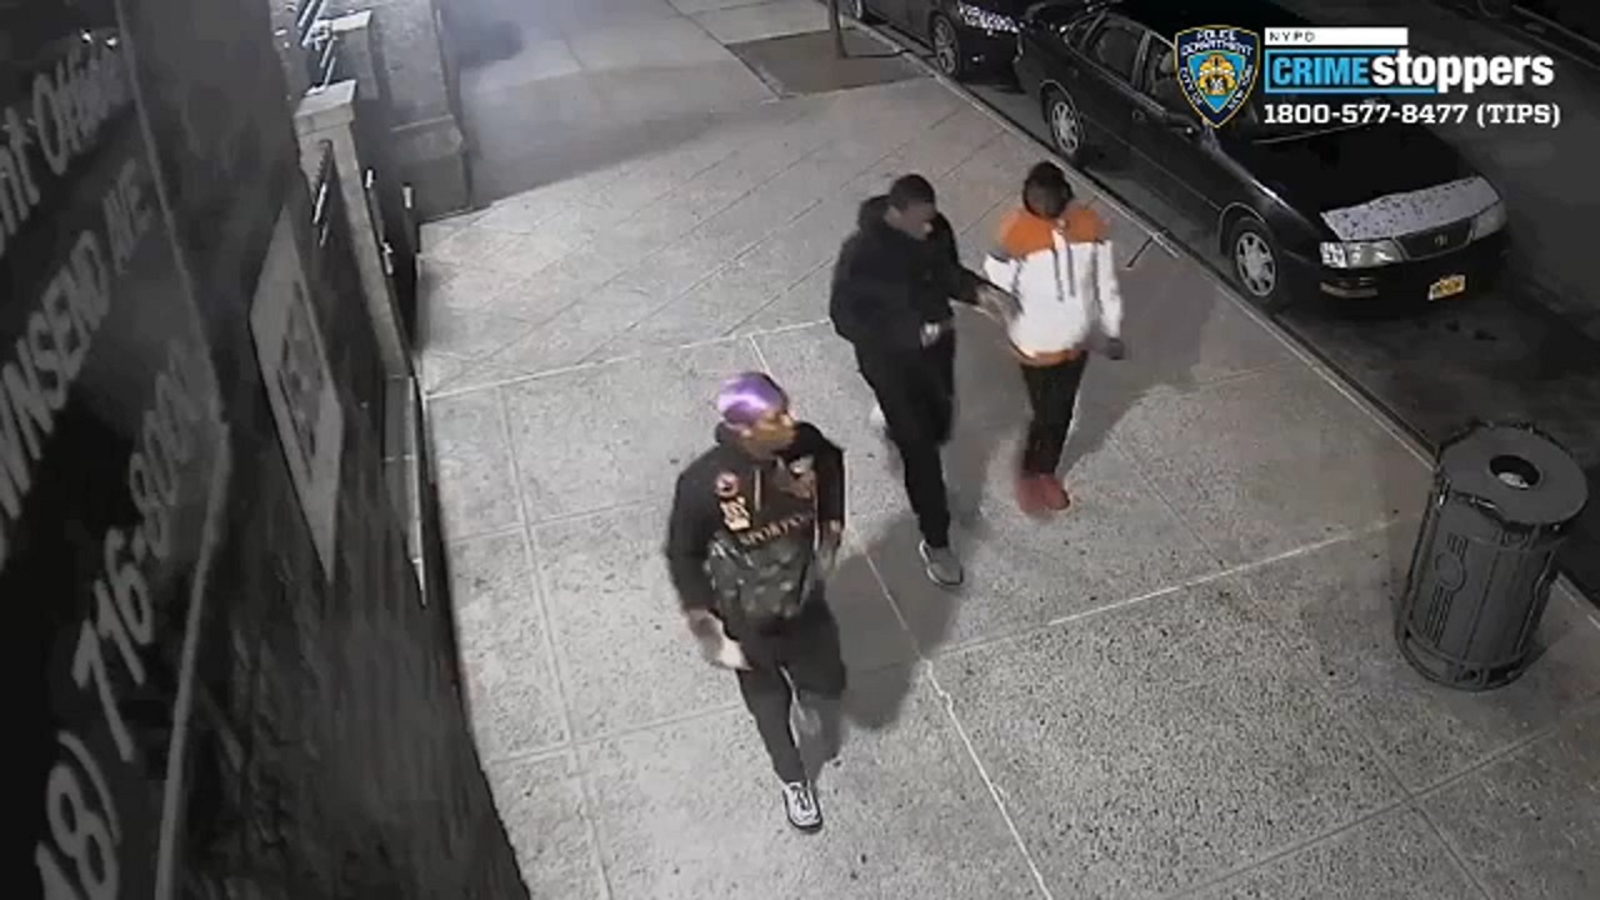 Police looking for men who lured victims to be robbed via internet in the Bronx